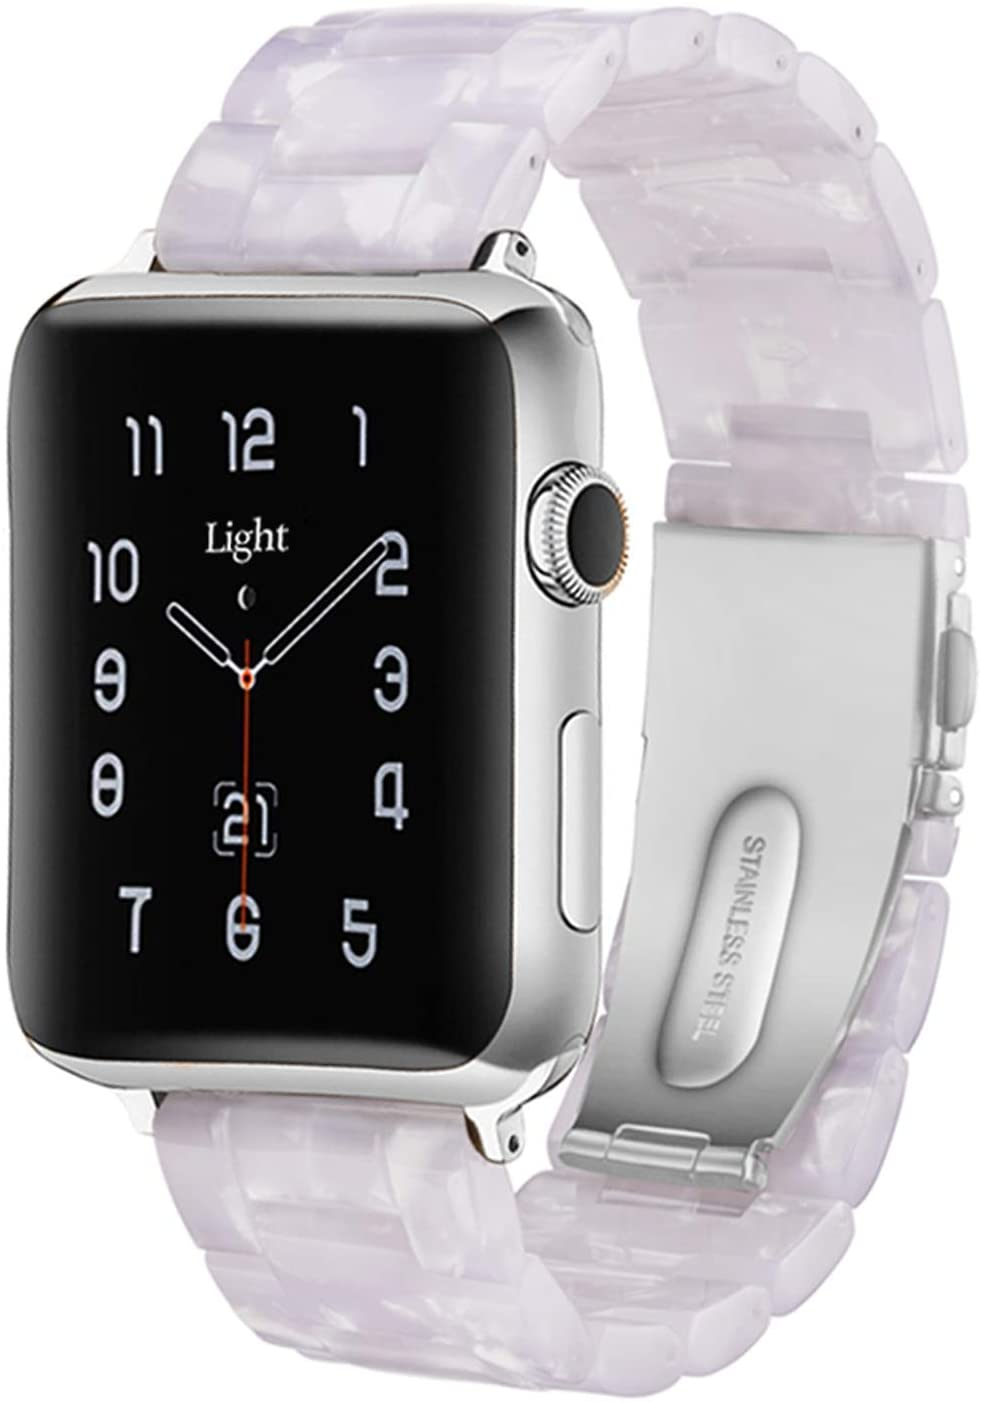 Light Apple Watch Band - Fashion Resin iWatch Band Bracelet Compatible with Stainless Steel Buckle for Apple Watch Series 6 Series SE Series 5 Series 4 Series 3 Series 2 1 (Shining White, 42mm/44mm)